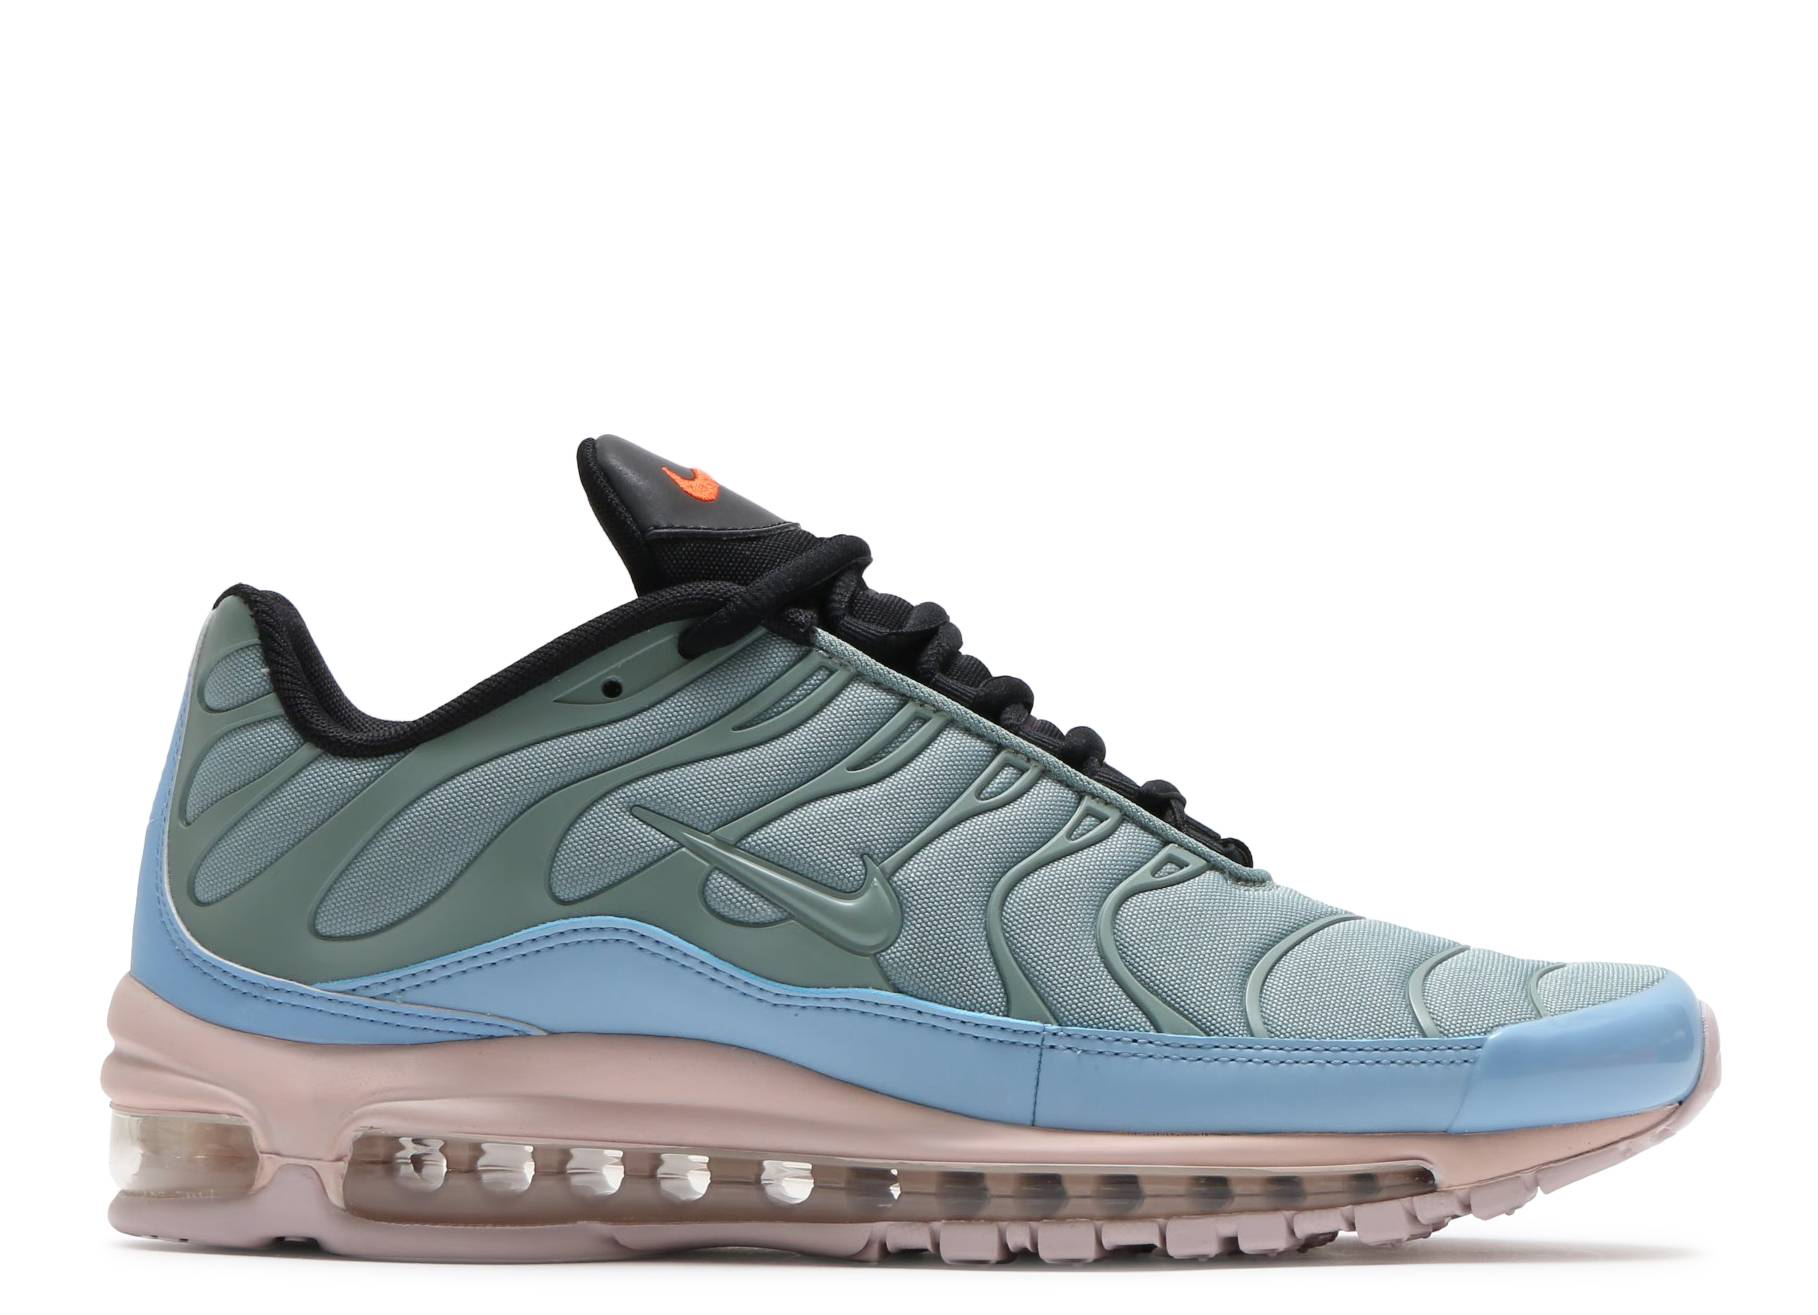 quality design e65c6 788a1 AIR MAX 97 / PLUS